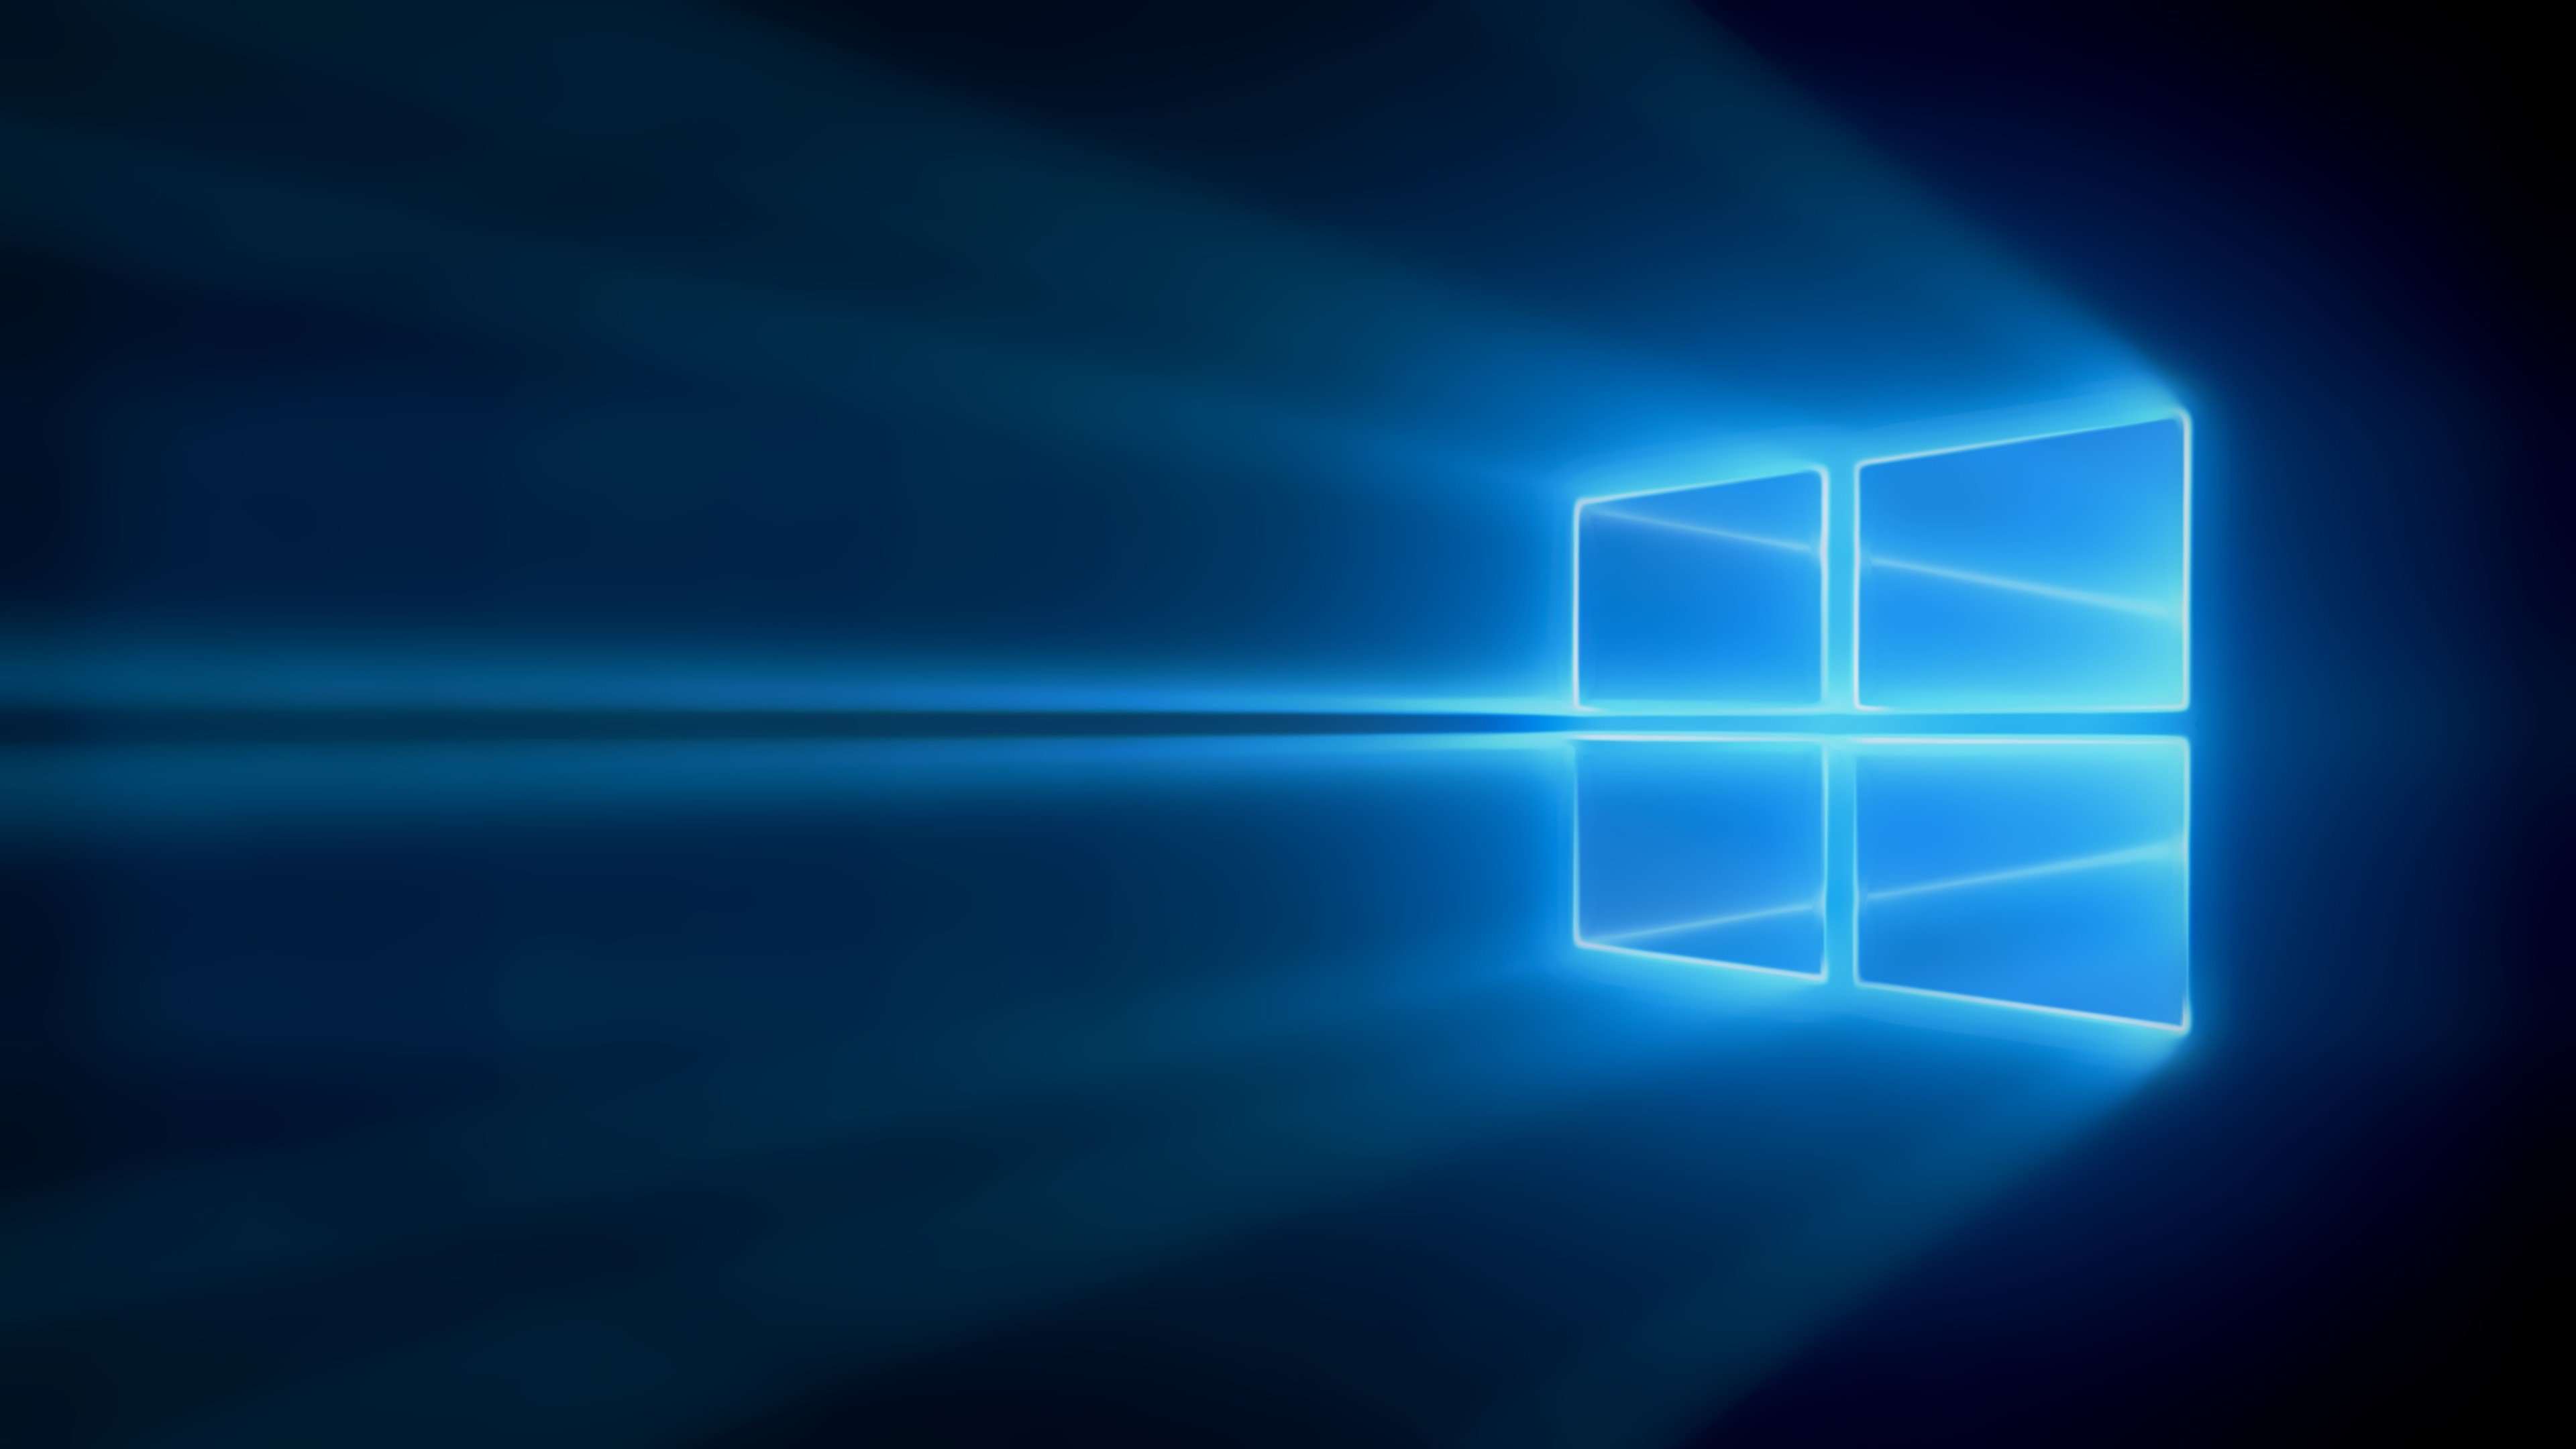 3840 X 2160 Wallpaper Windows 10